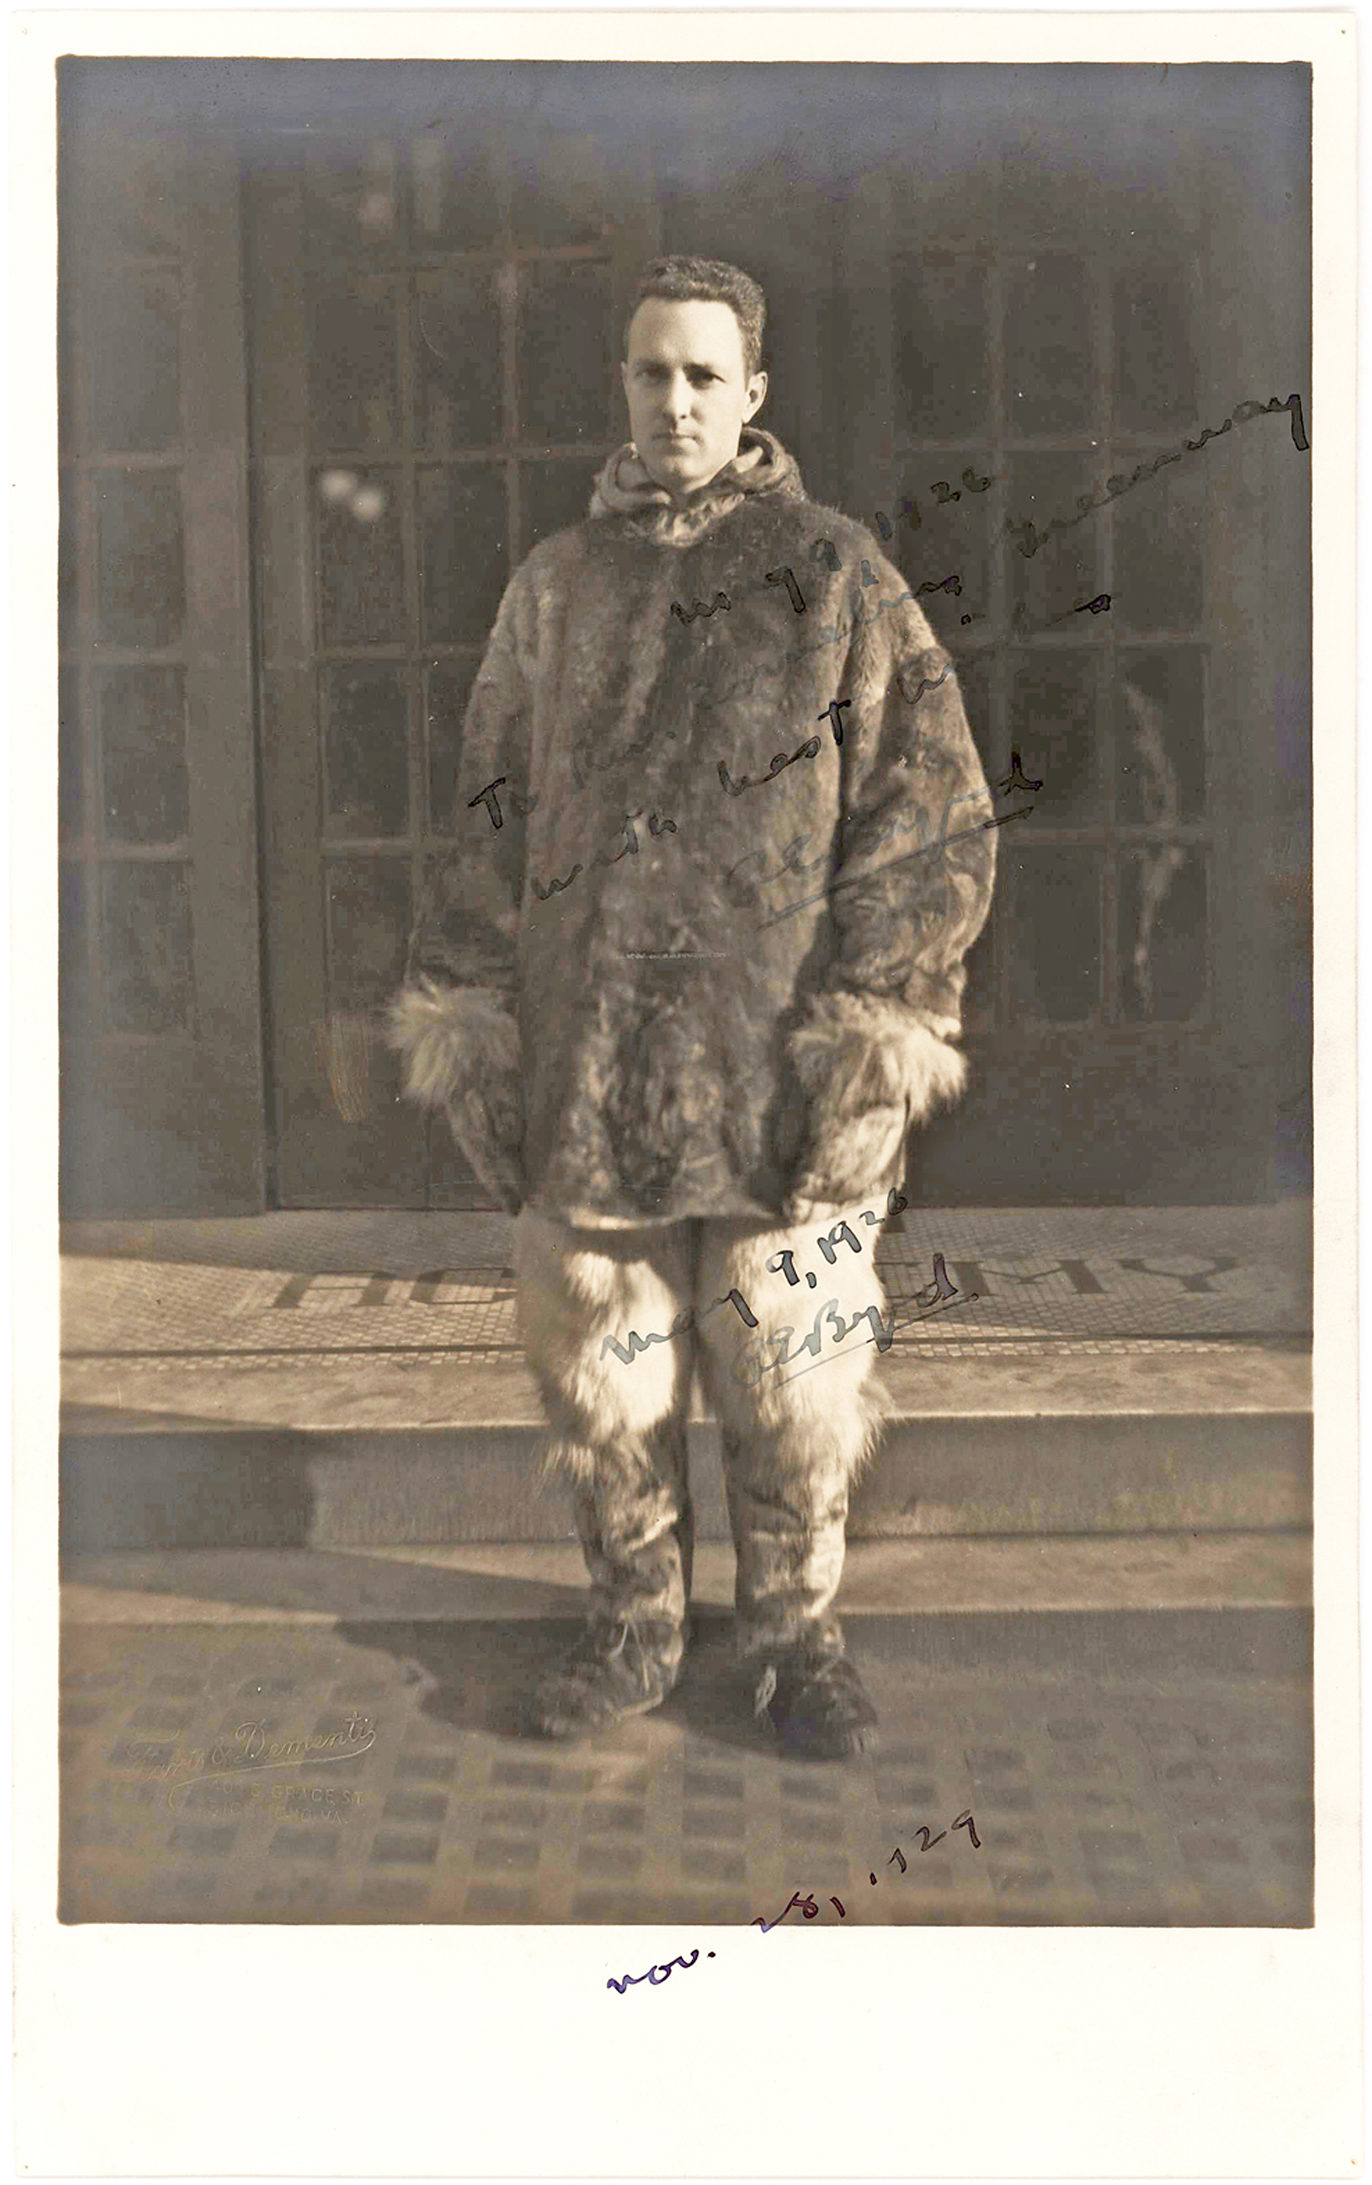 Stunning Signed Photograph of Admiral Byrd in Arctic Attire with the Dates of His Groundbreaking Flights Over the North and South Poles